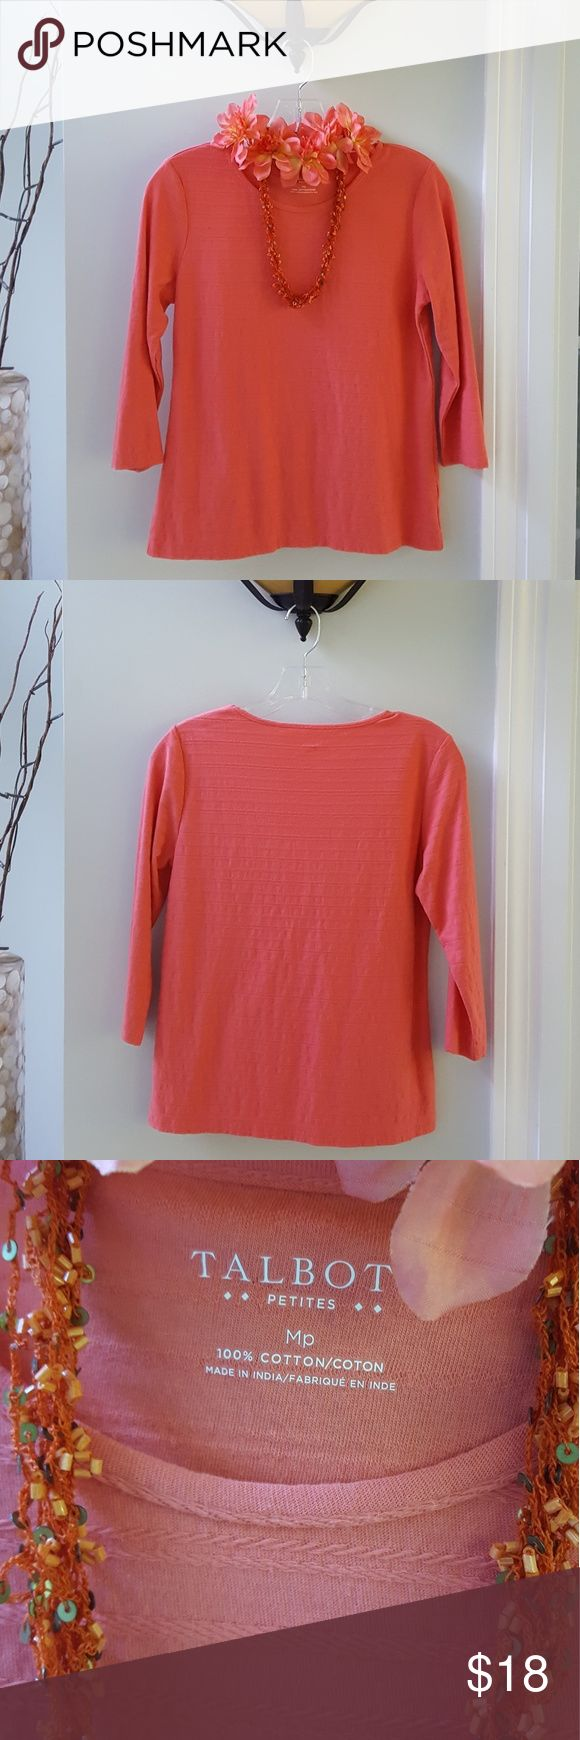 Talbots Top Gorgeous coral color! Top has as slight texture to it Crew neck w/long sleeves ♥️From a smoke & pet free home♥️ If you would like a customized, private quote, simply bundle this item (alone or with other items). No commitments! I bet you will be pleasantly surprised by the quote! Try it, you have nothing to lose. Talbots Tops